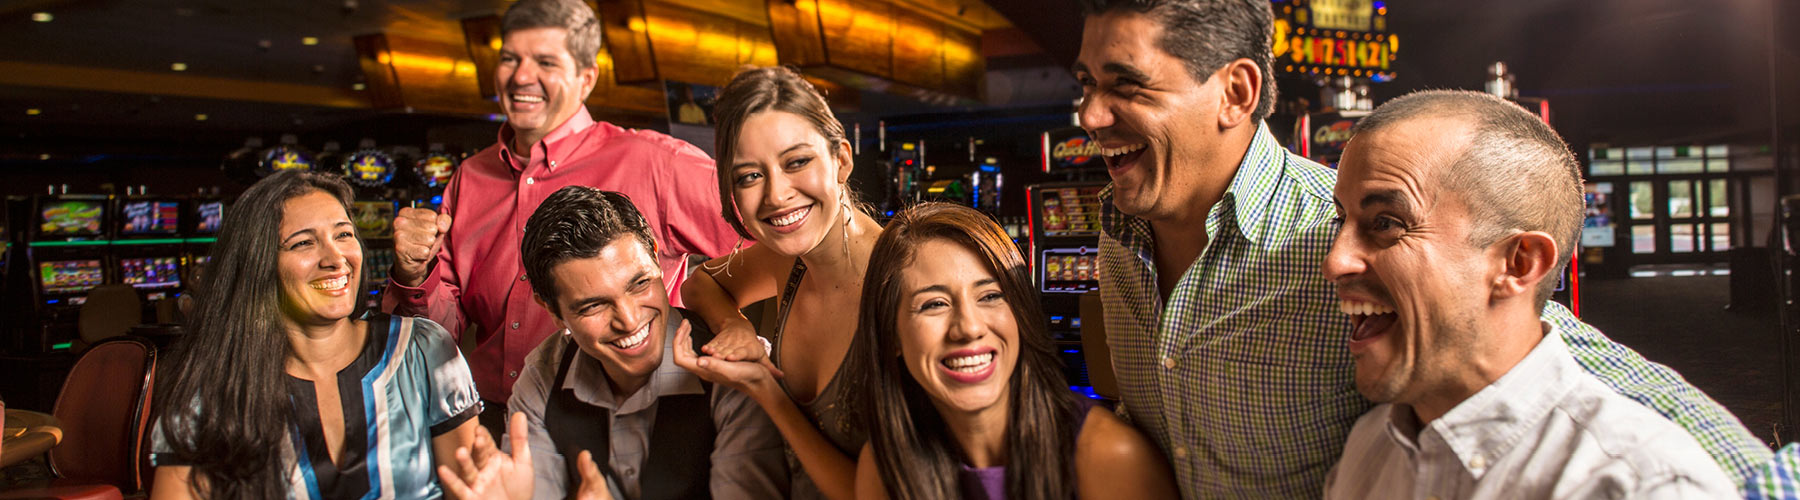 New Mexico Casinos – Win Big at Inn of the Mountain Gods